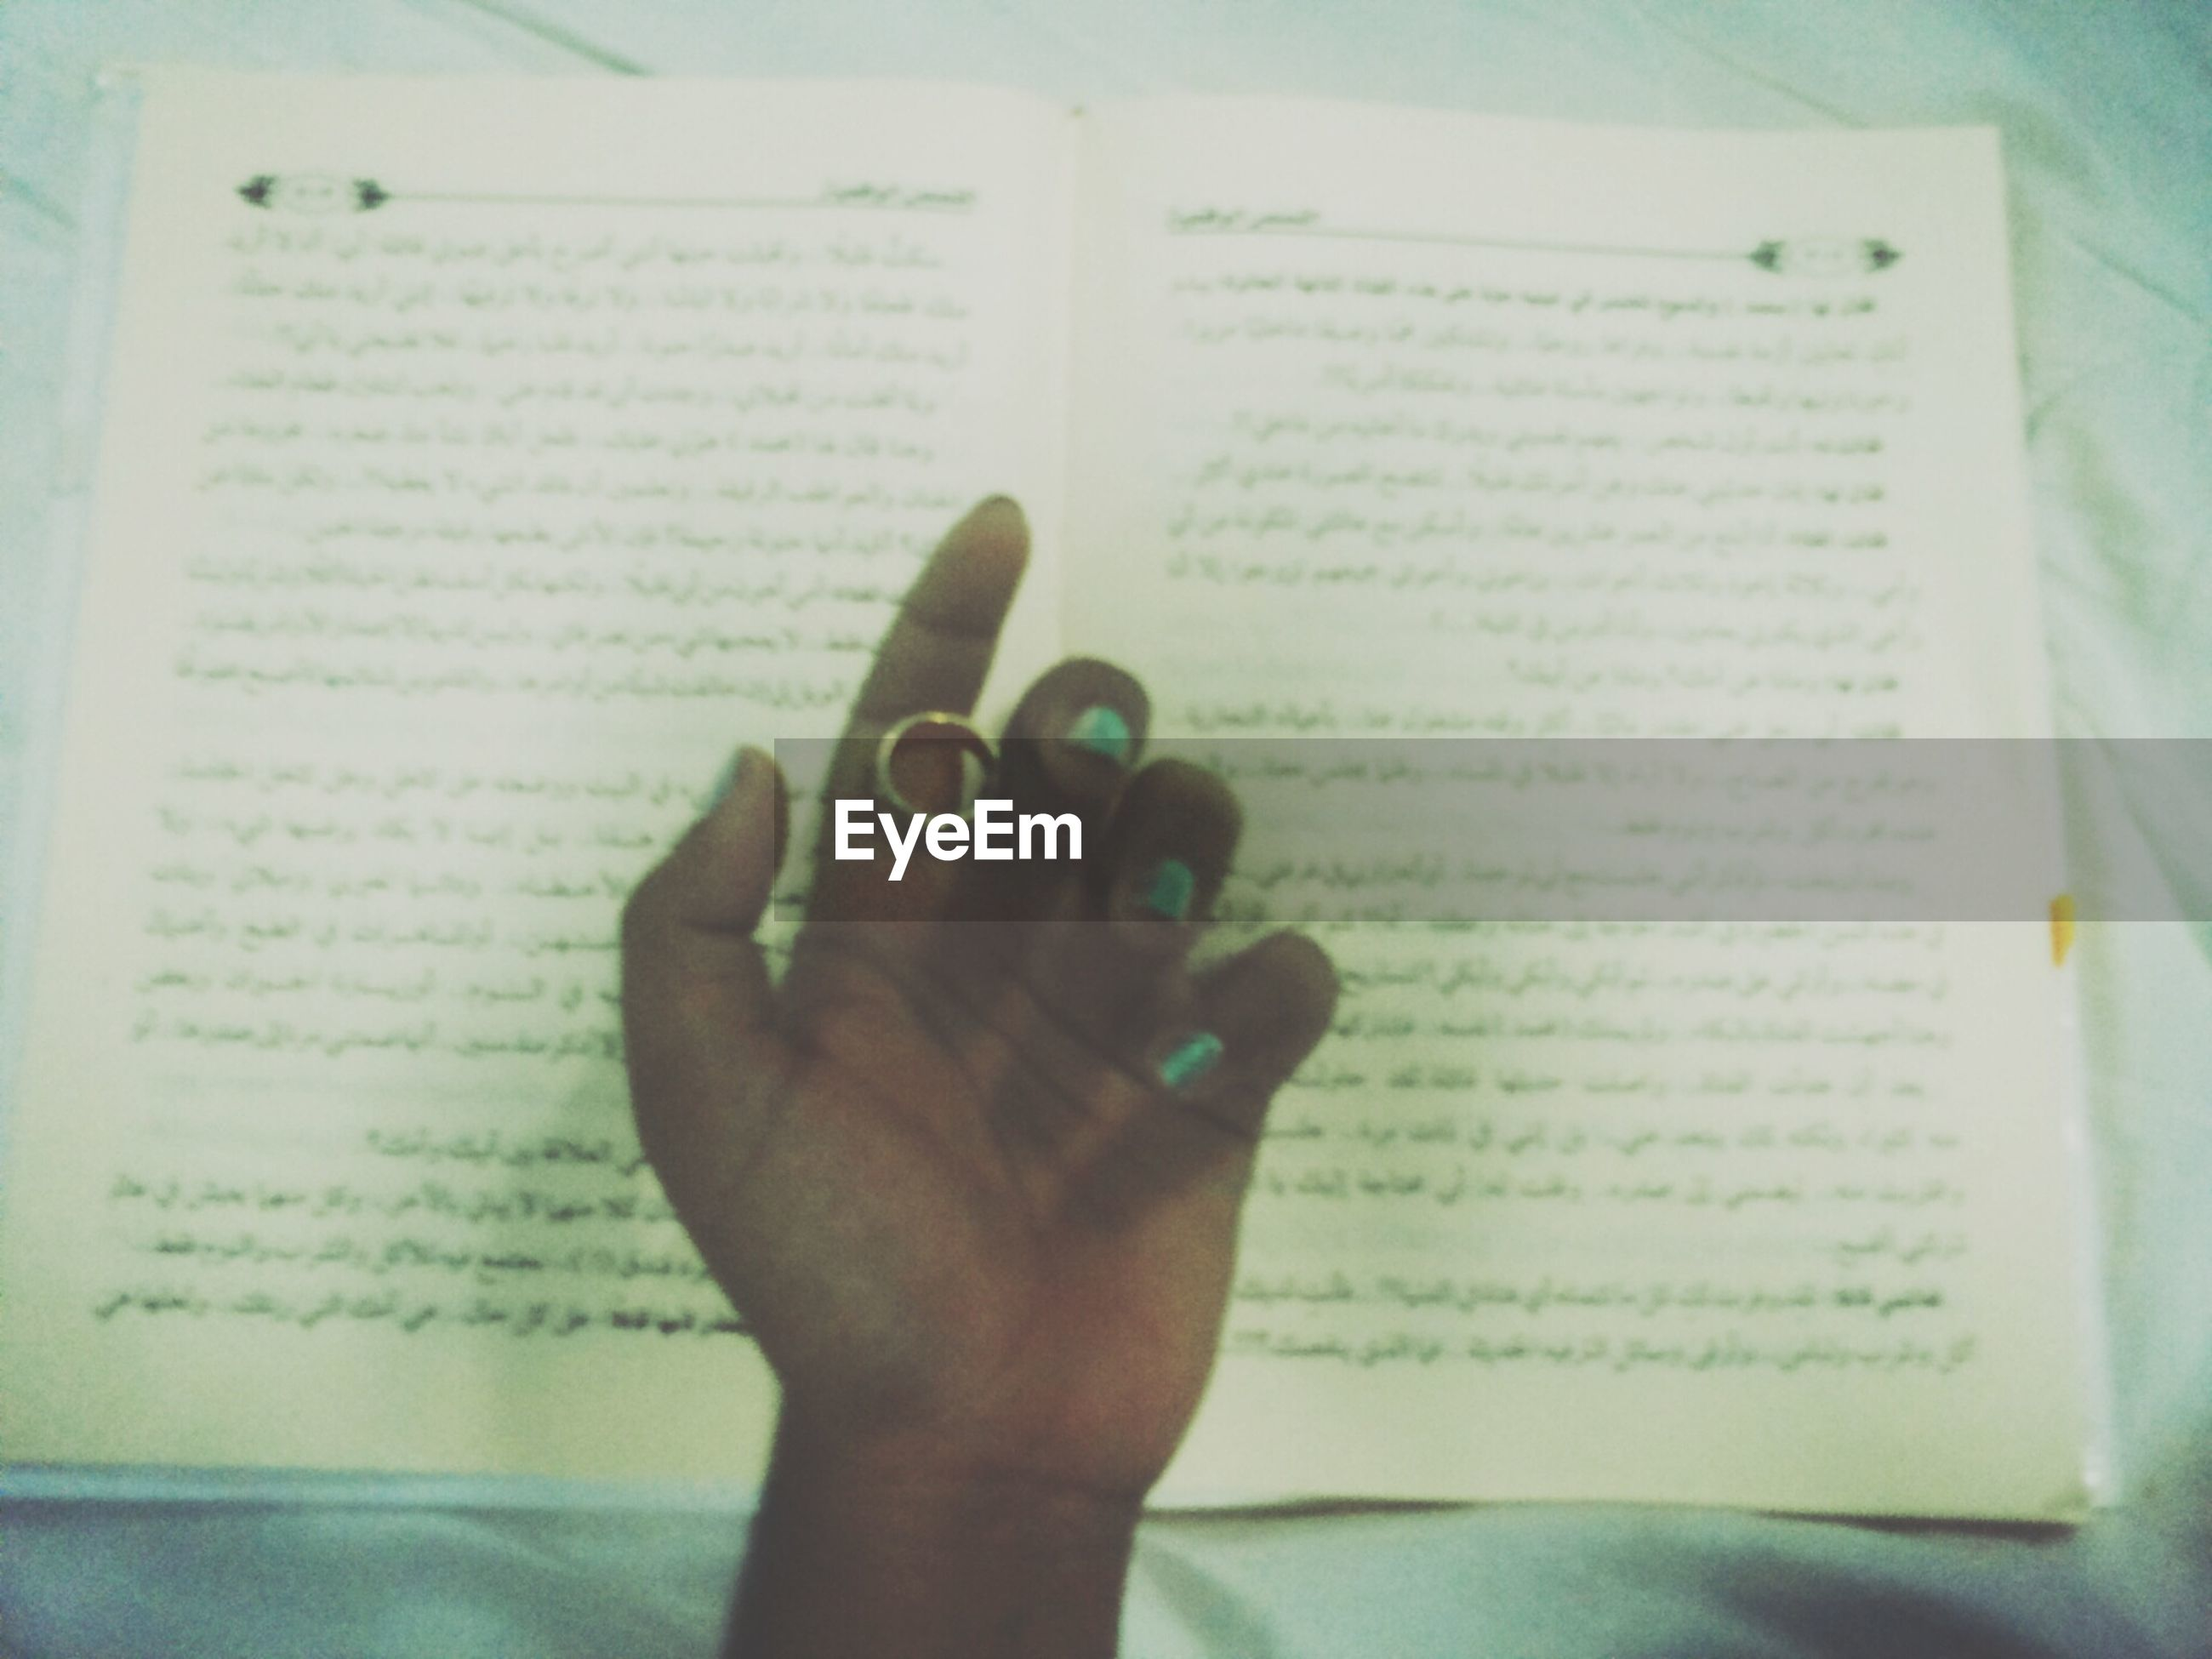 indoors, person, communication, part of, human finger, holding, text, cropped, book, western script, paper, close-up, wireless technology, education, technology, writing, pen